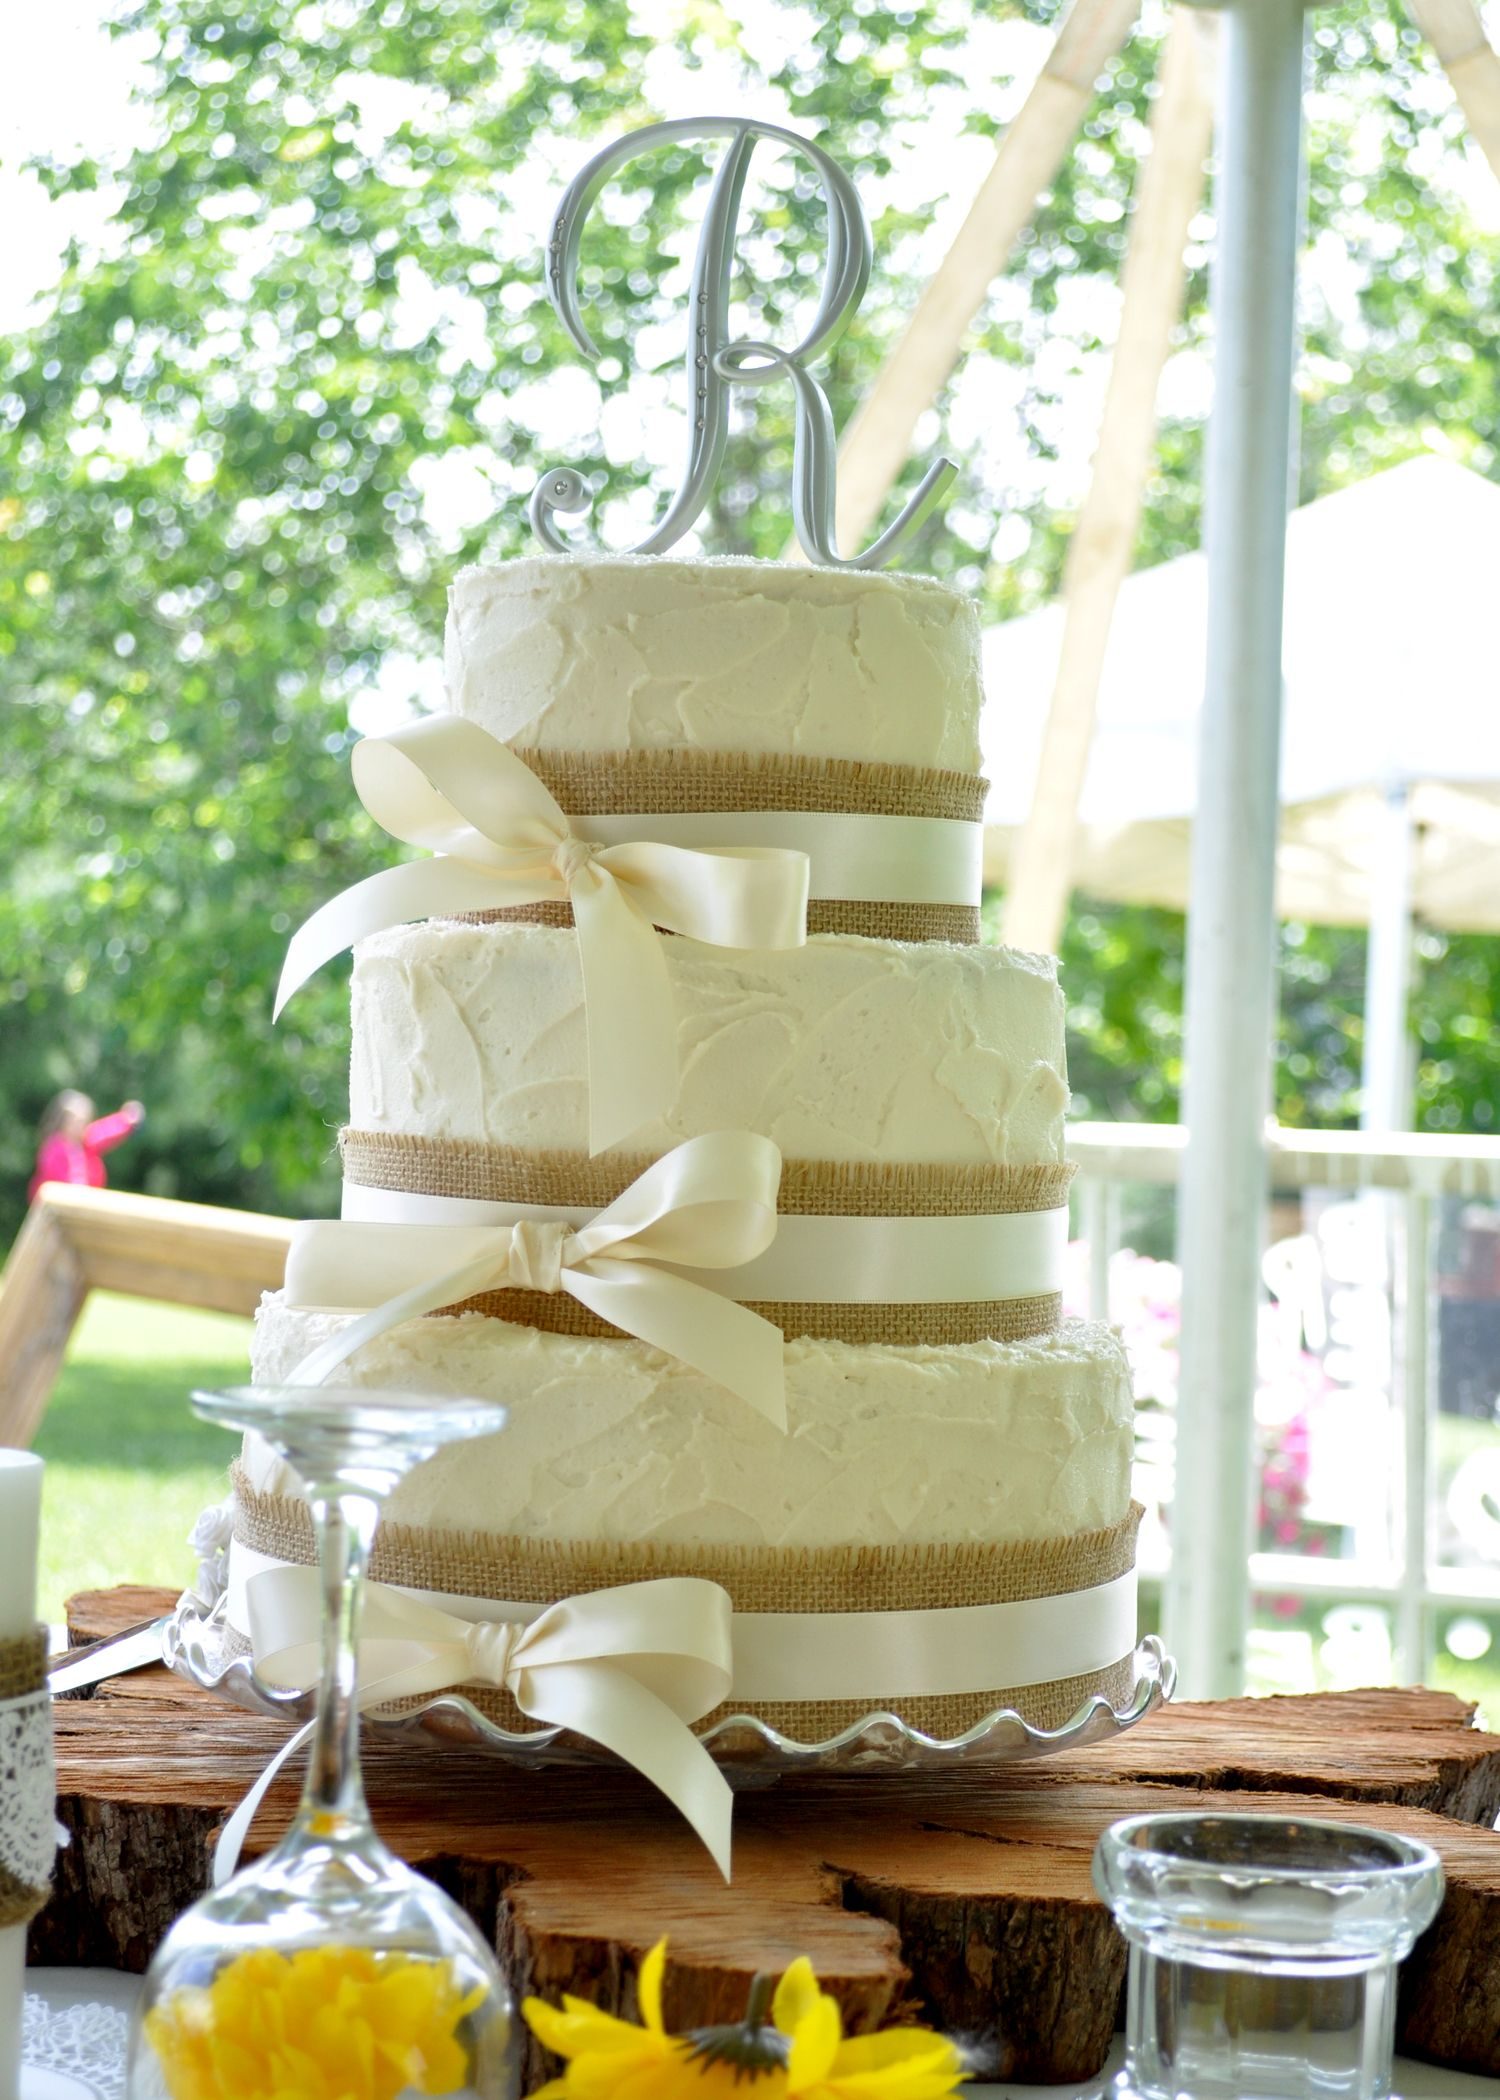 Round Wedding Cakes Rustic style wedding cake with